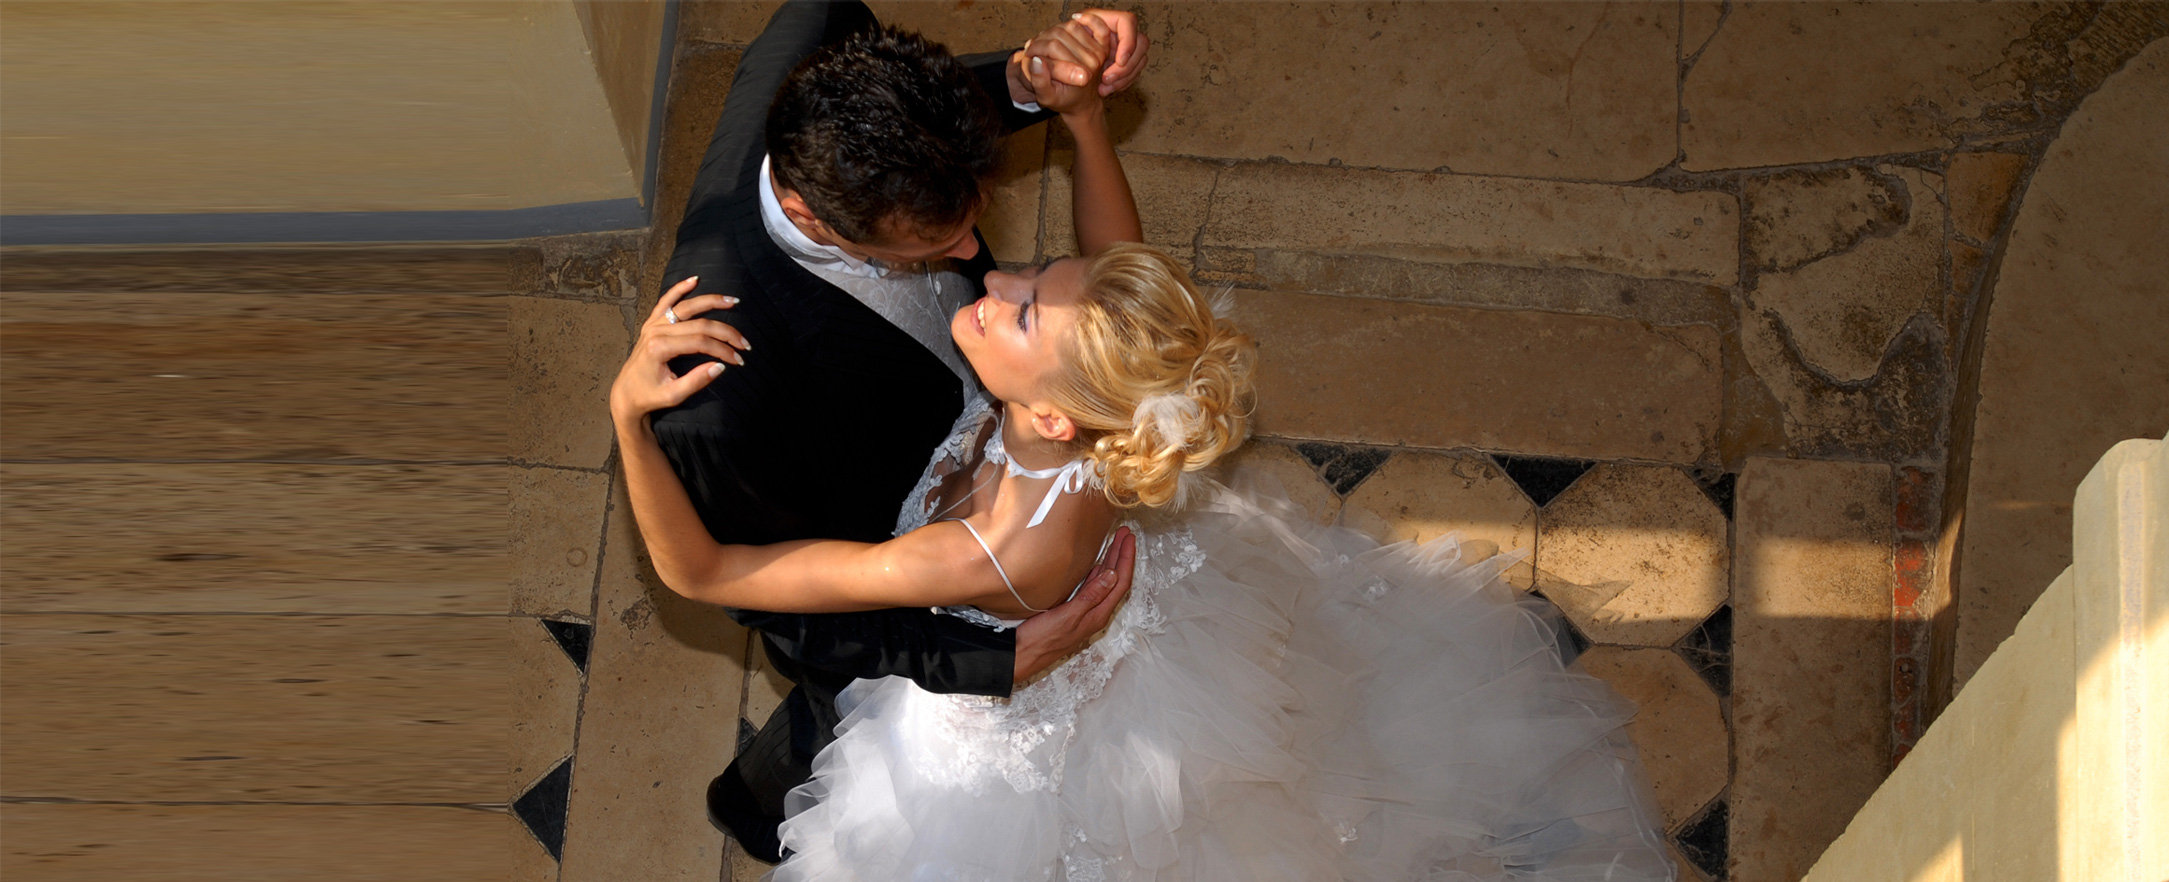 Learn a dance routines that will wow your guest!